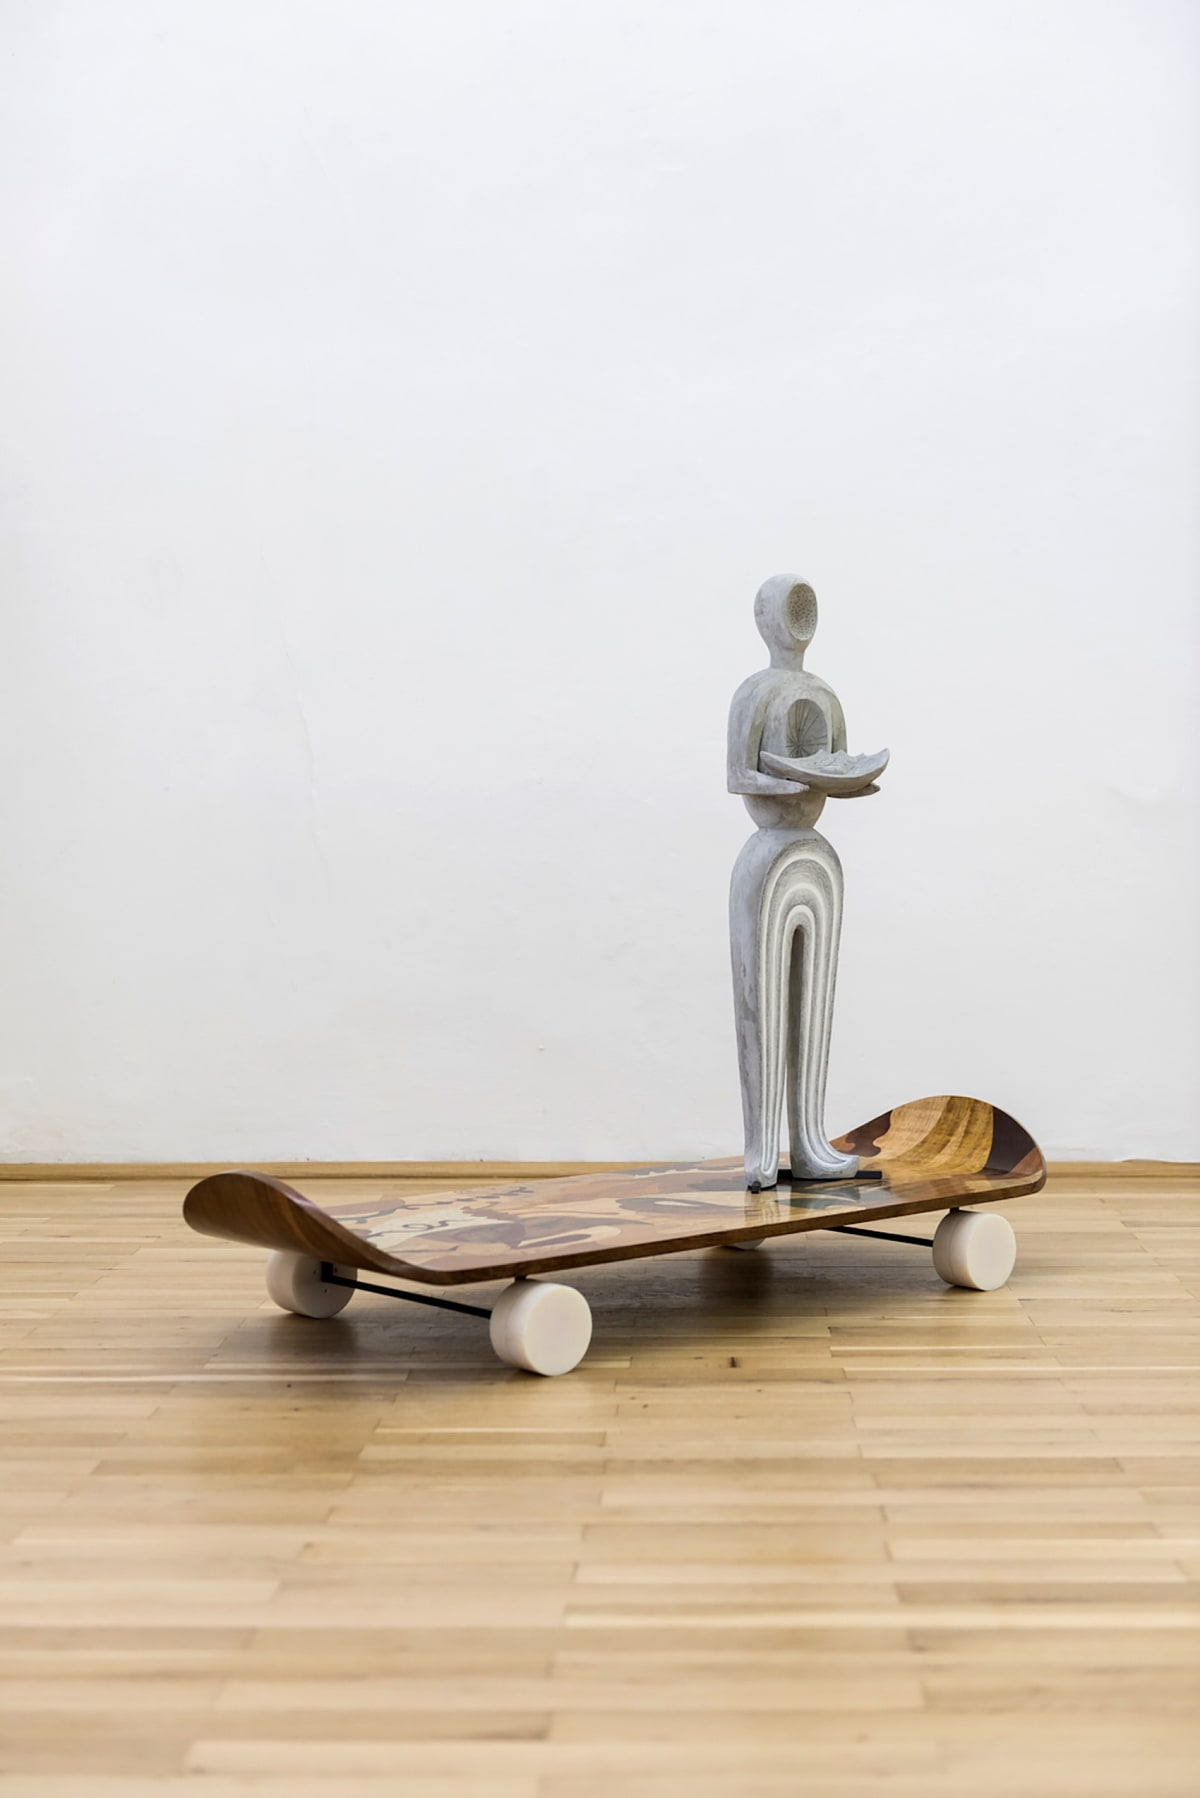 Image shows a sculpture standing on a wooden skateboard